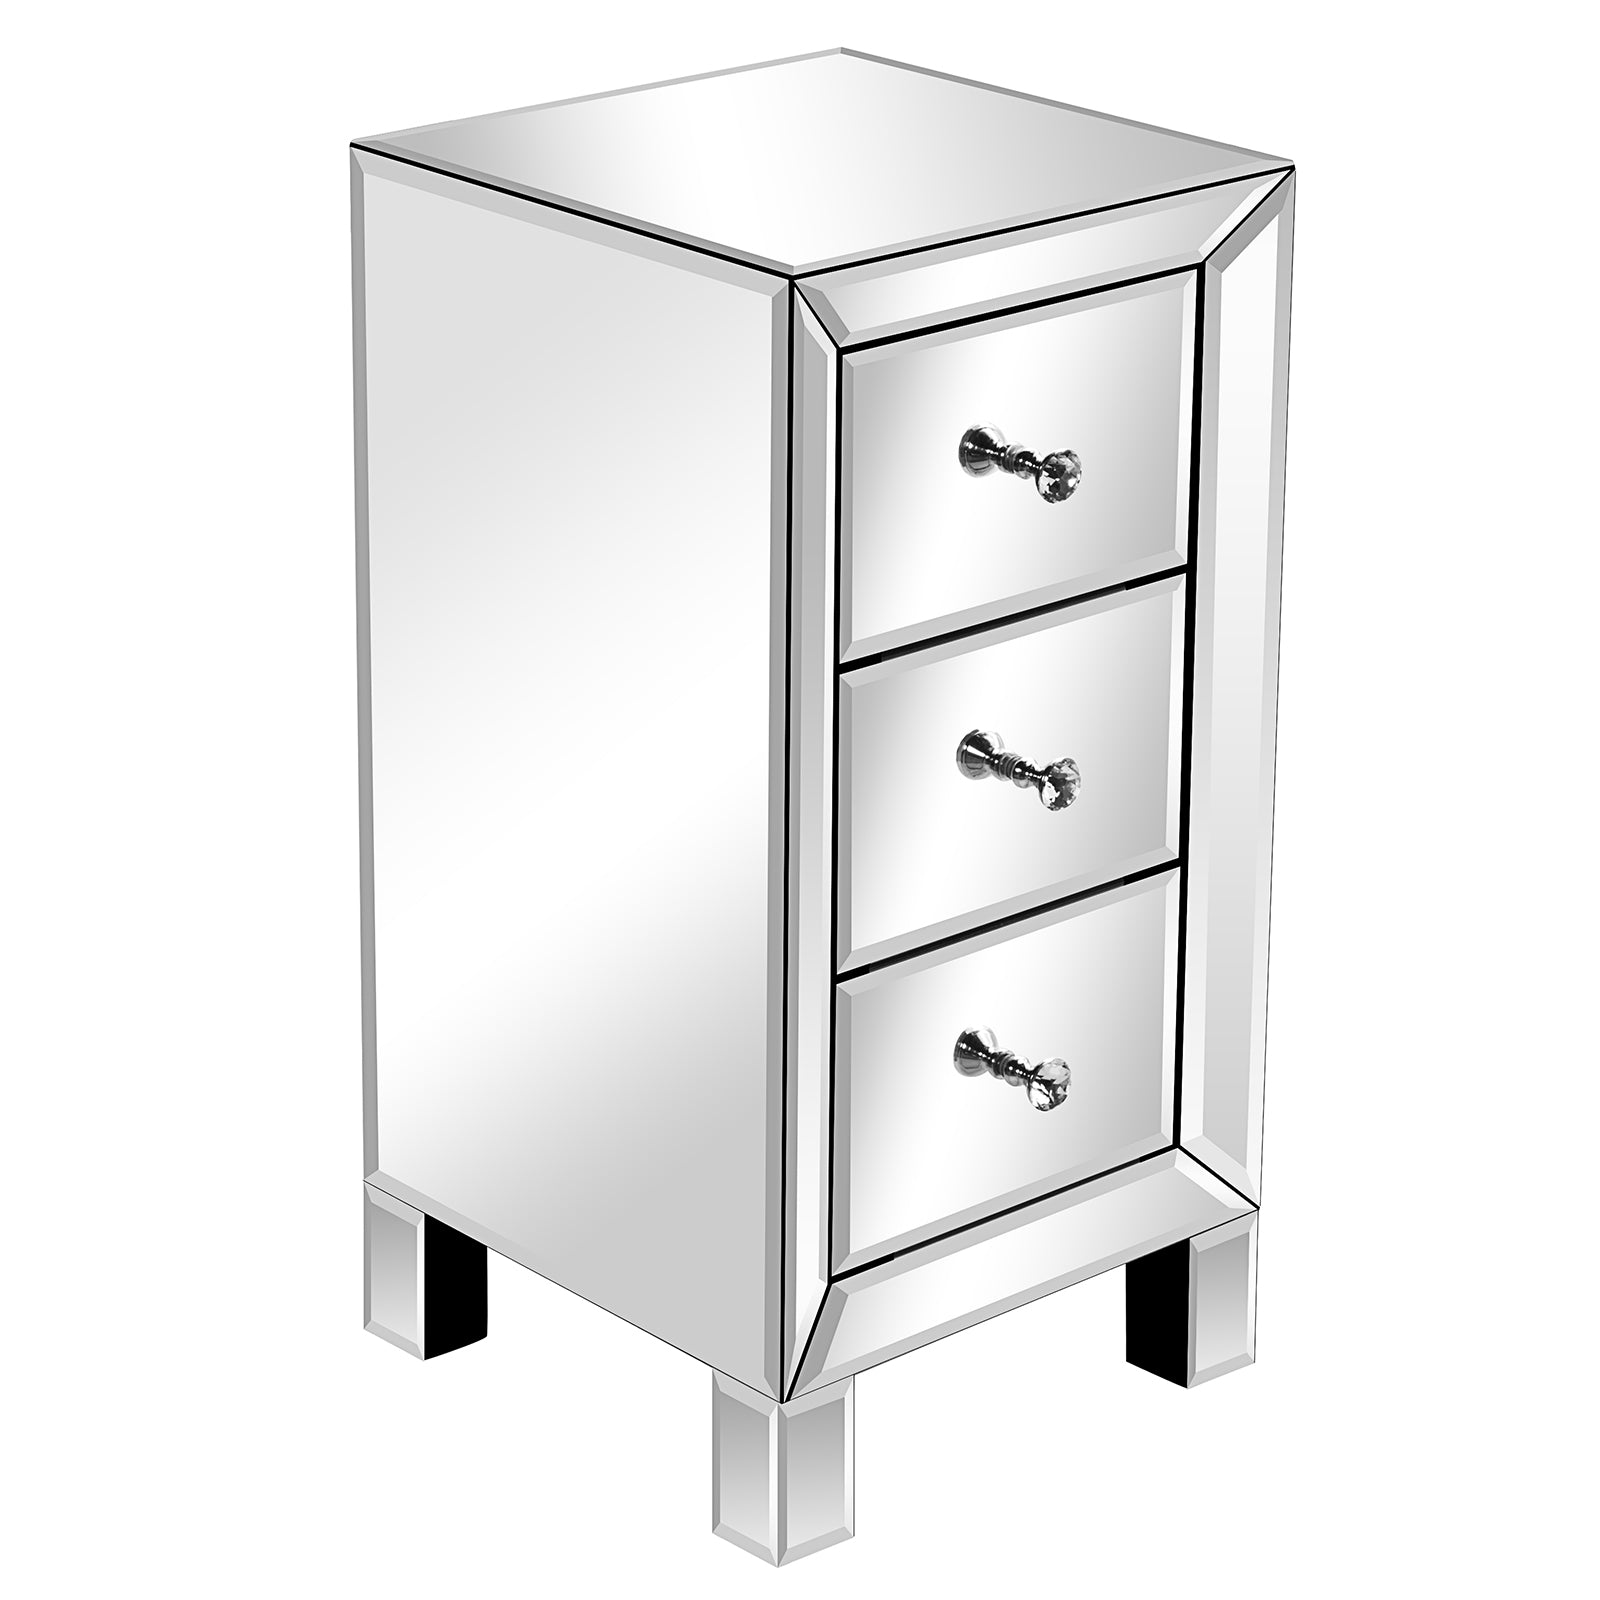 3 Drawer Mirrored Nightstand Mirrored Bedside Table